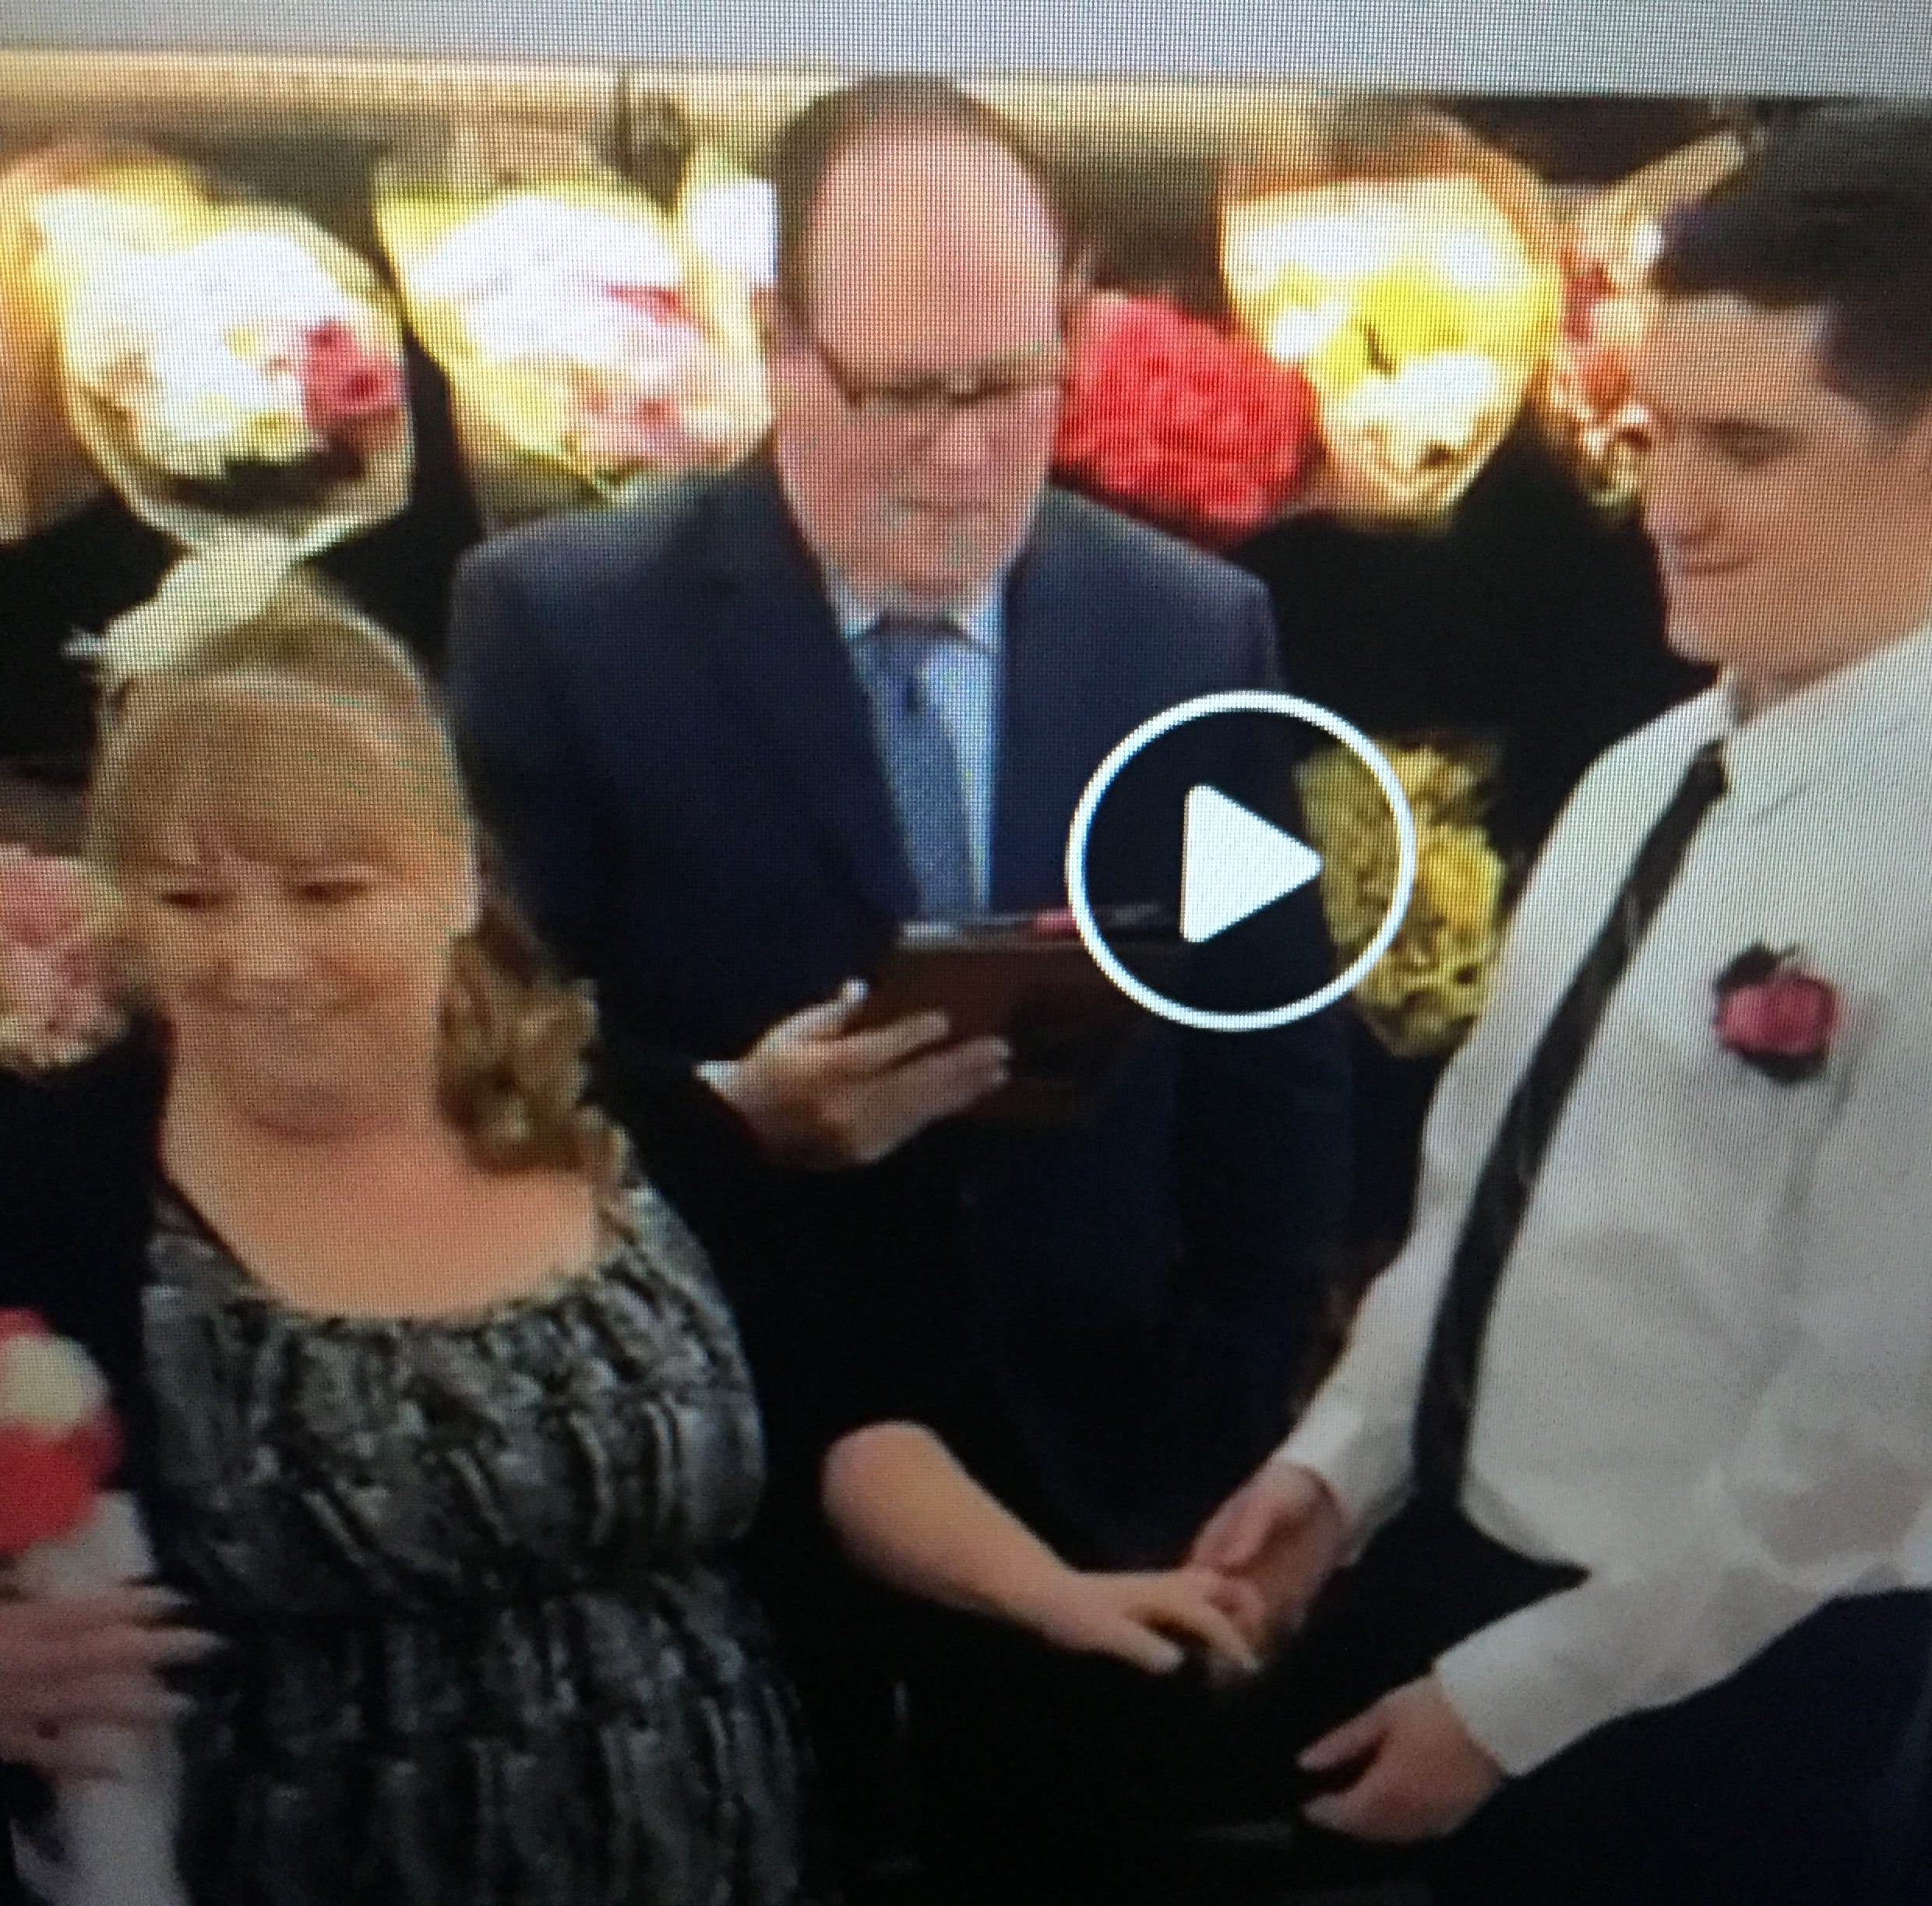 Vermont Valentines get married at Berlin Walmart